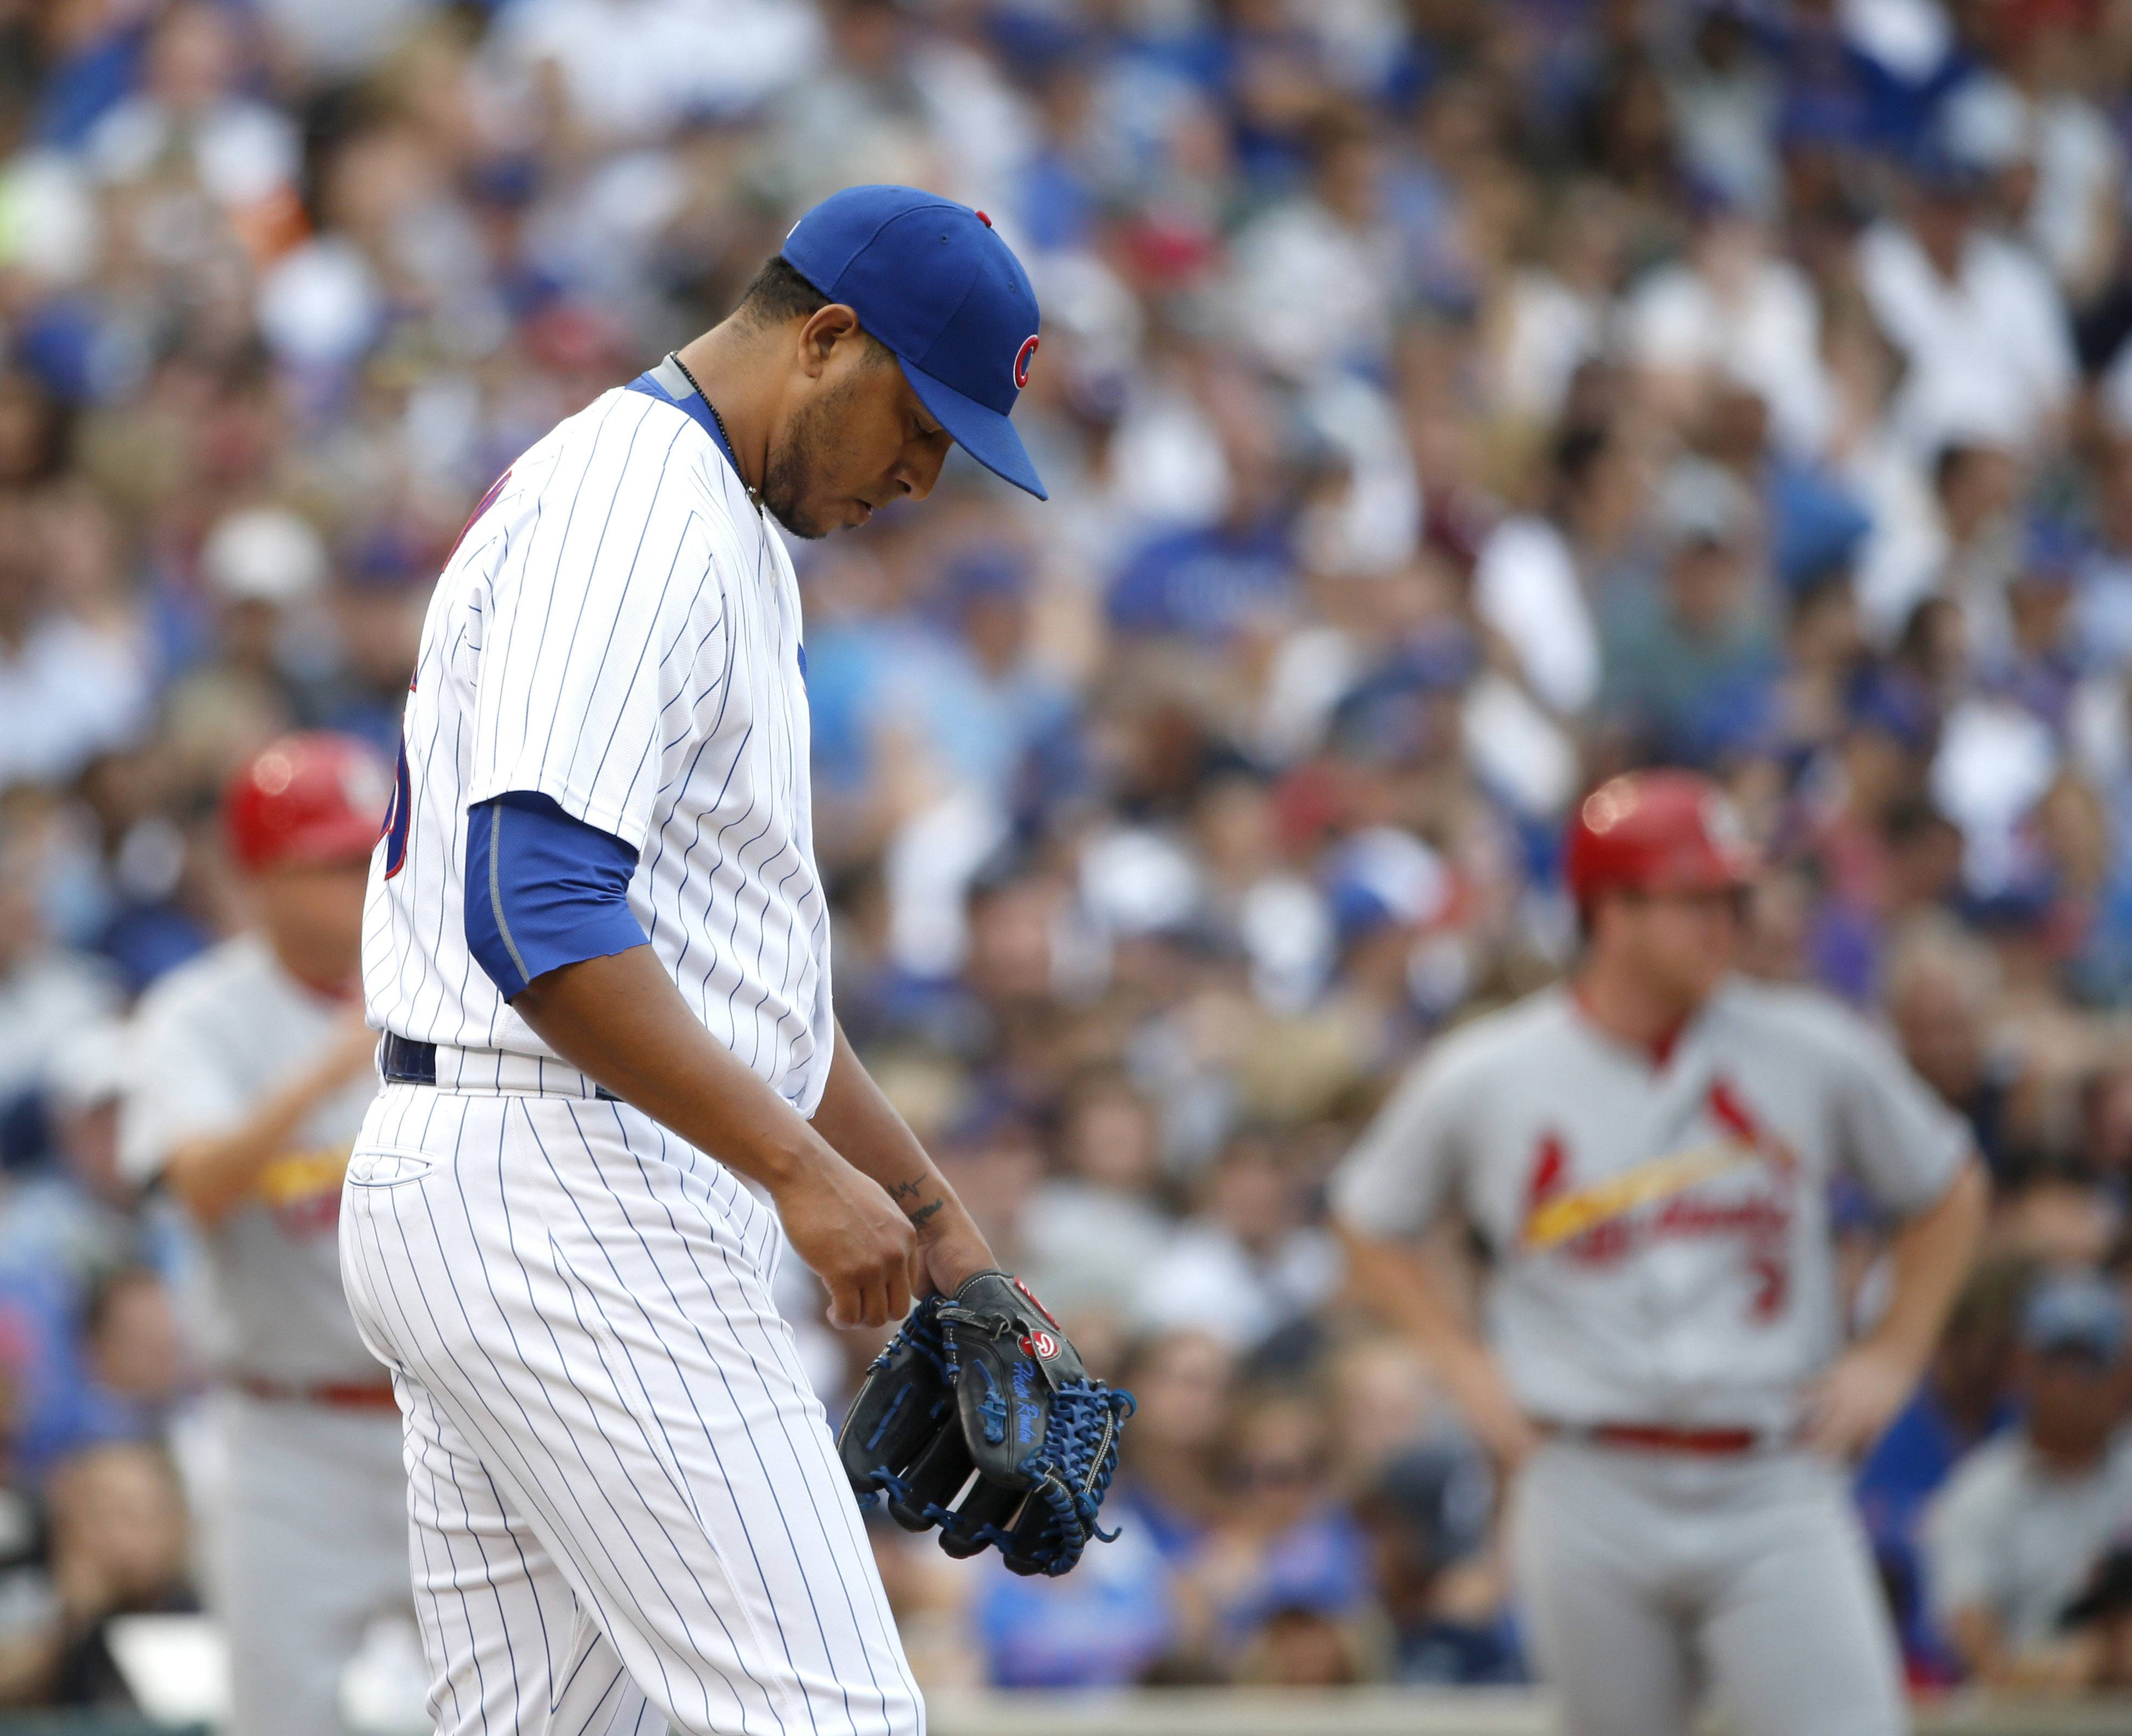 Chicago Cubs relief pitcher Hector Rondon returns to the mound after walking in a run during the eighth inning against the St. Louis Cardinals on in Chicago. The Cardinals scored 9 runs that inning.